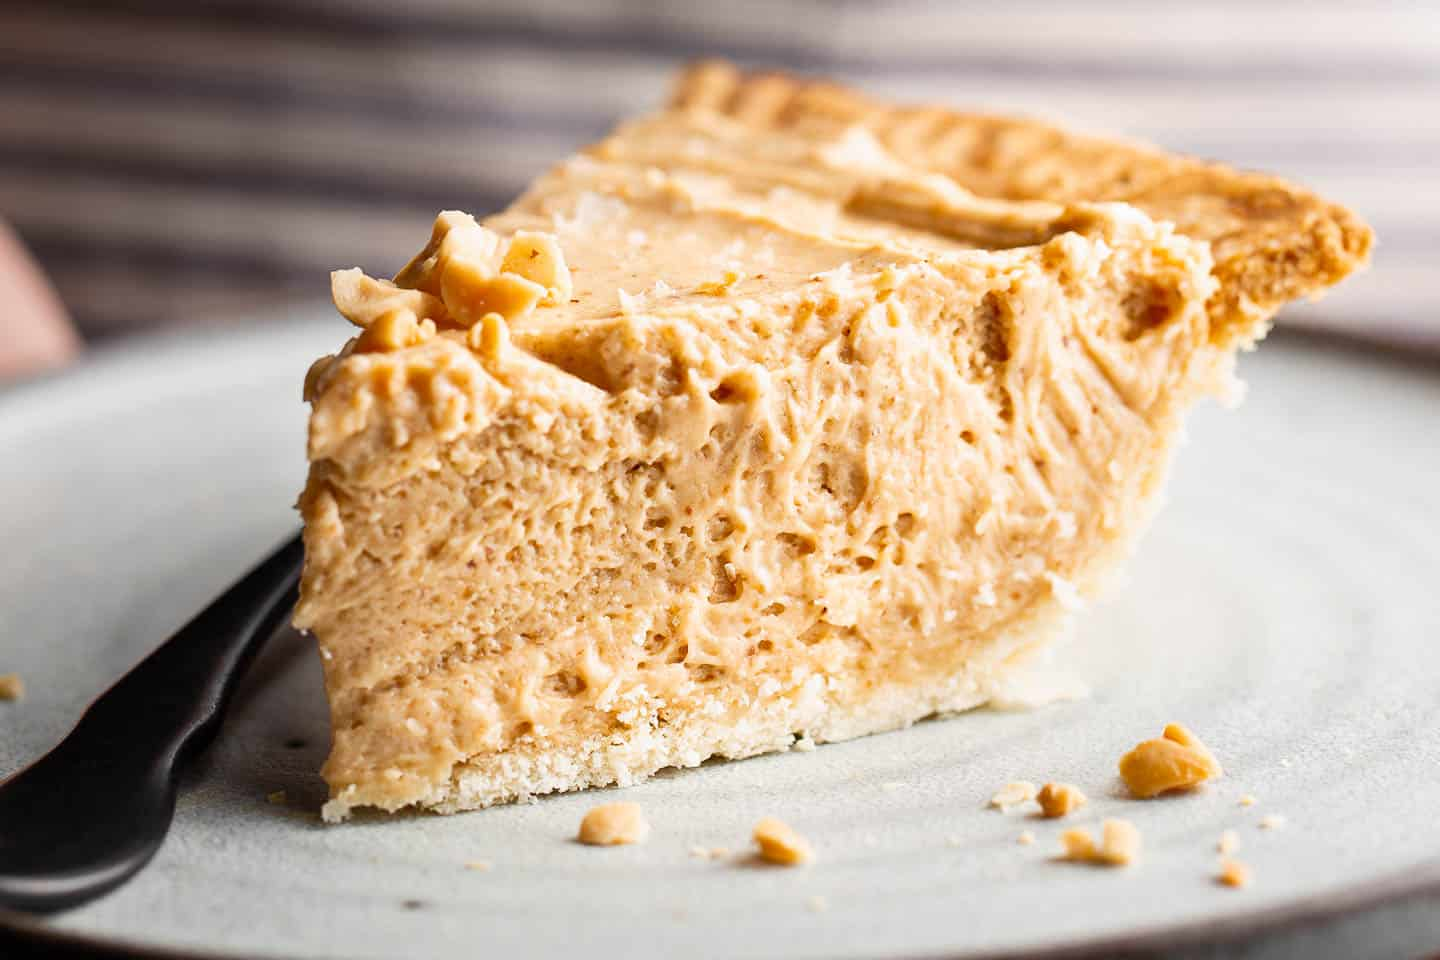 A slice of peanut butter pie on a plate.